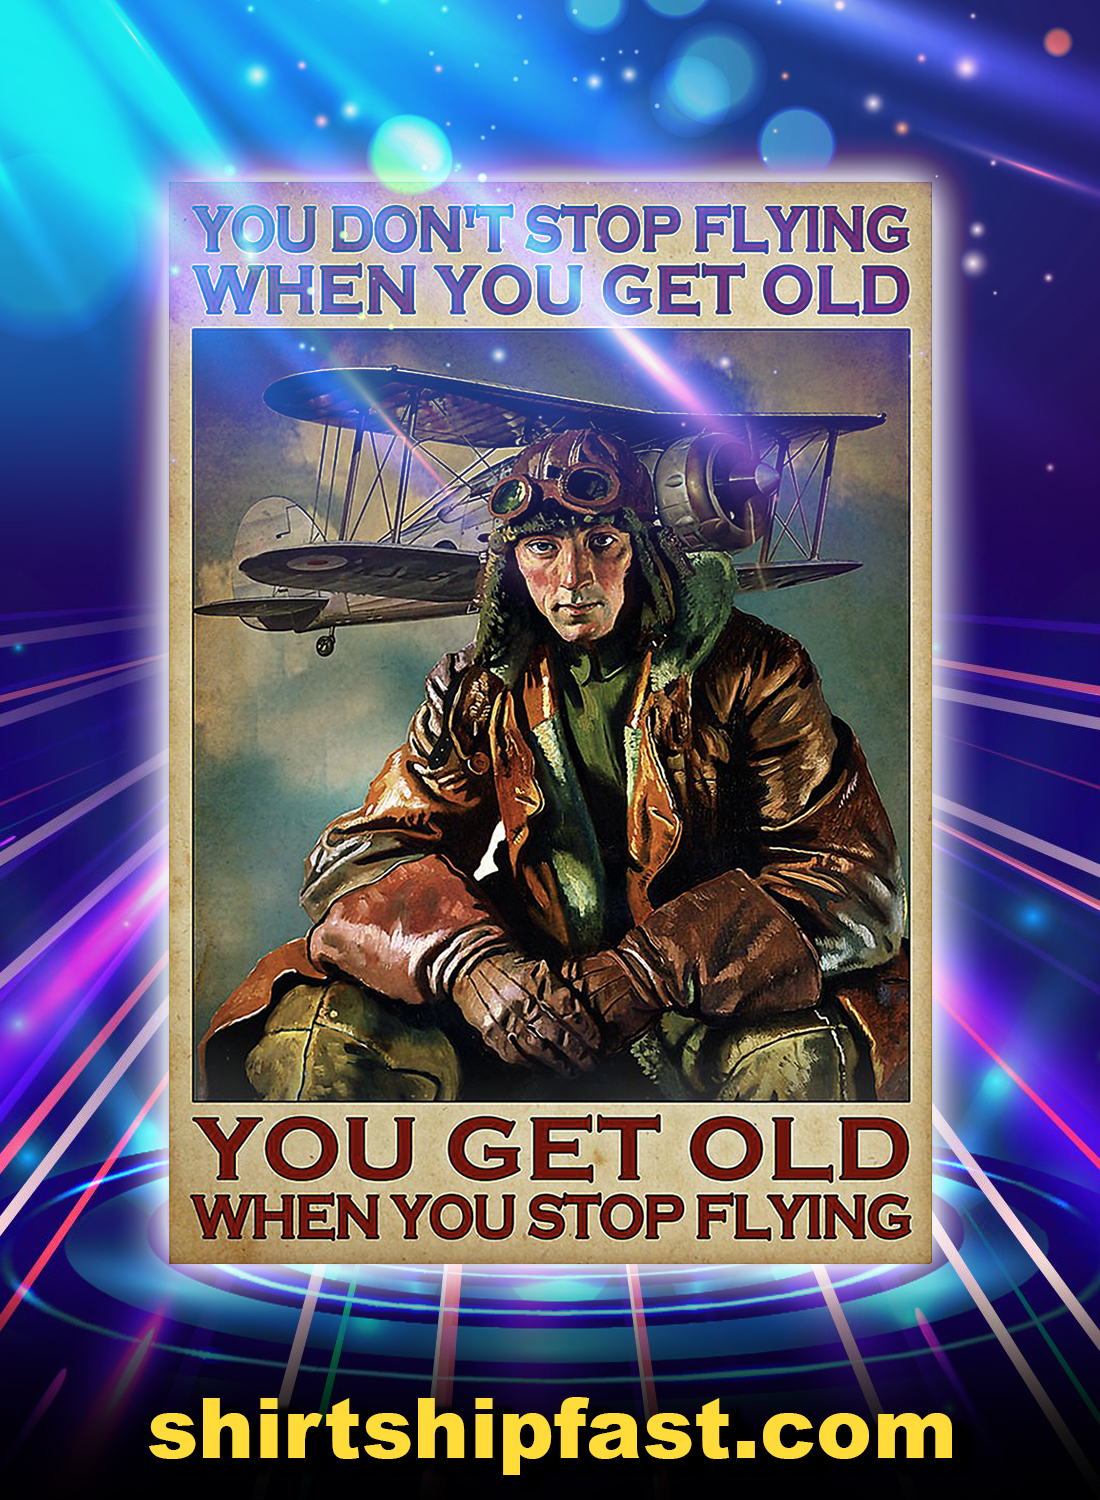 You don't stop flying when you get old pilot poster - A4